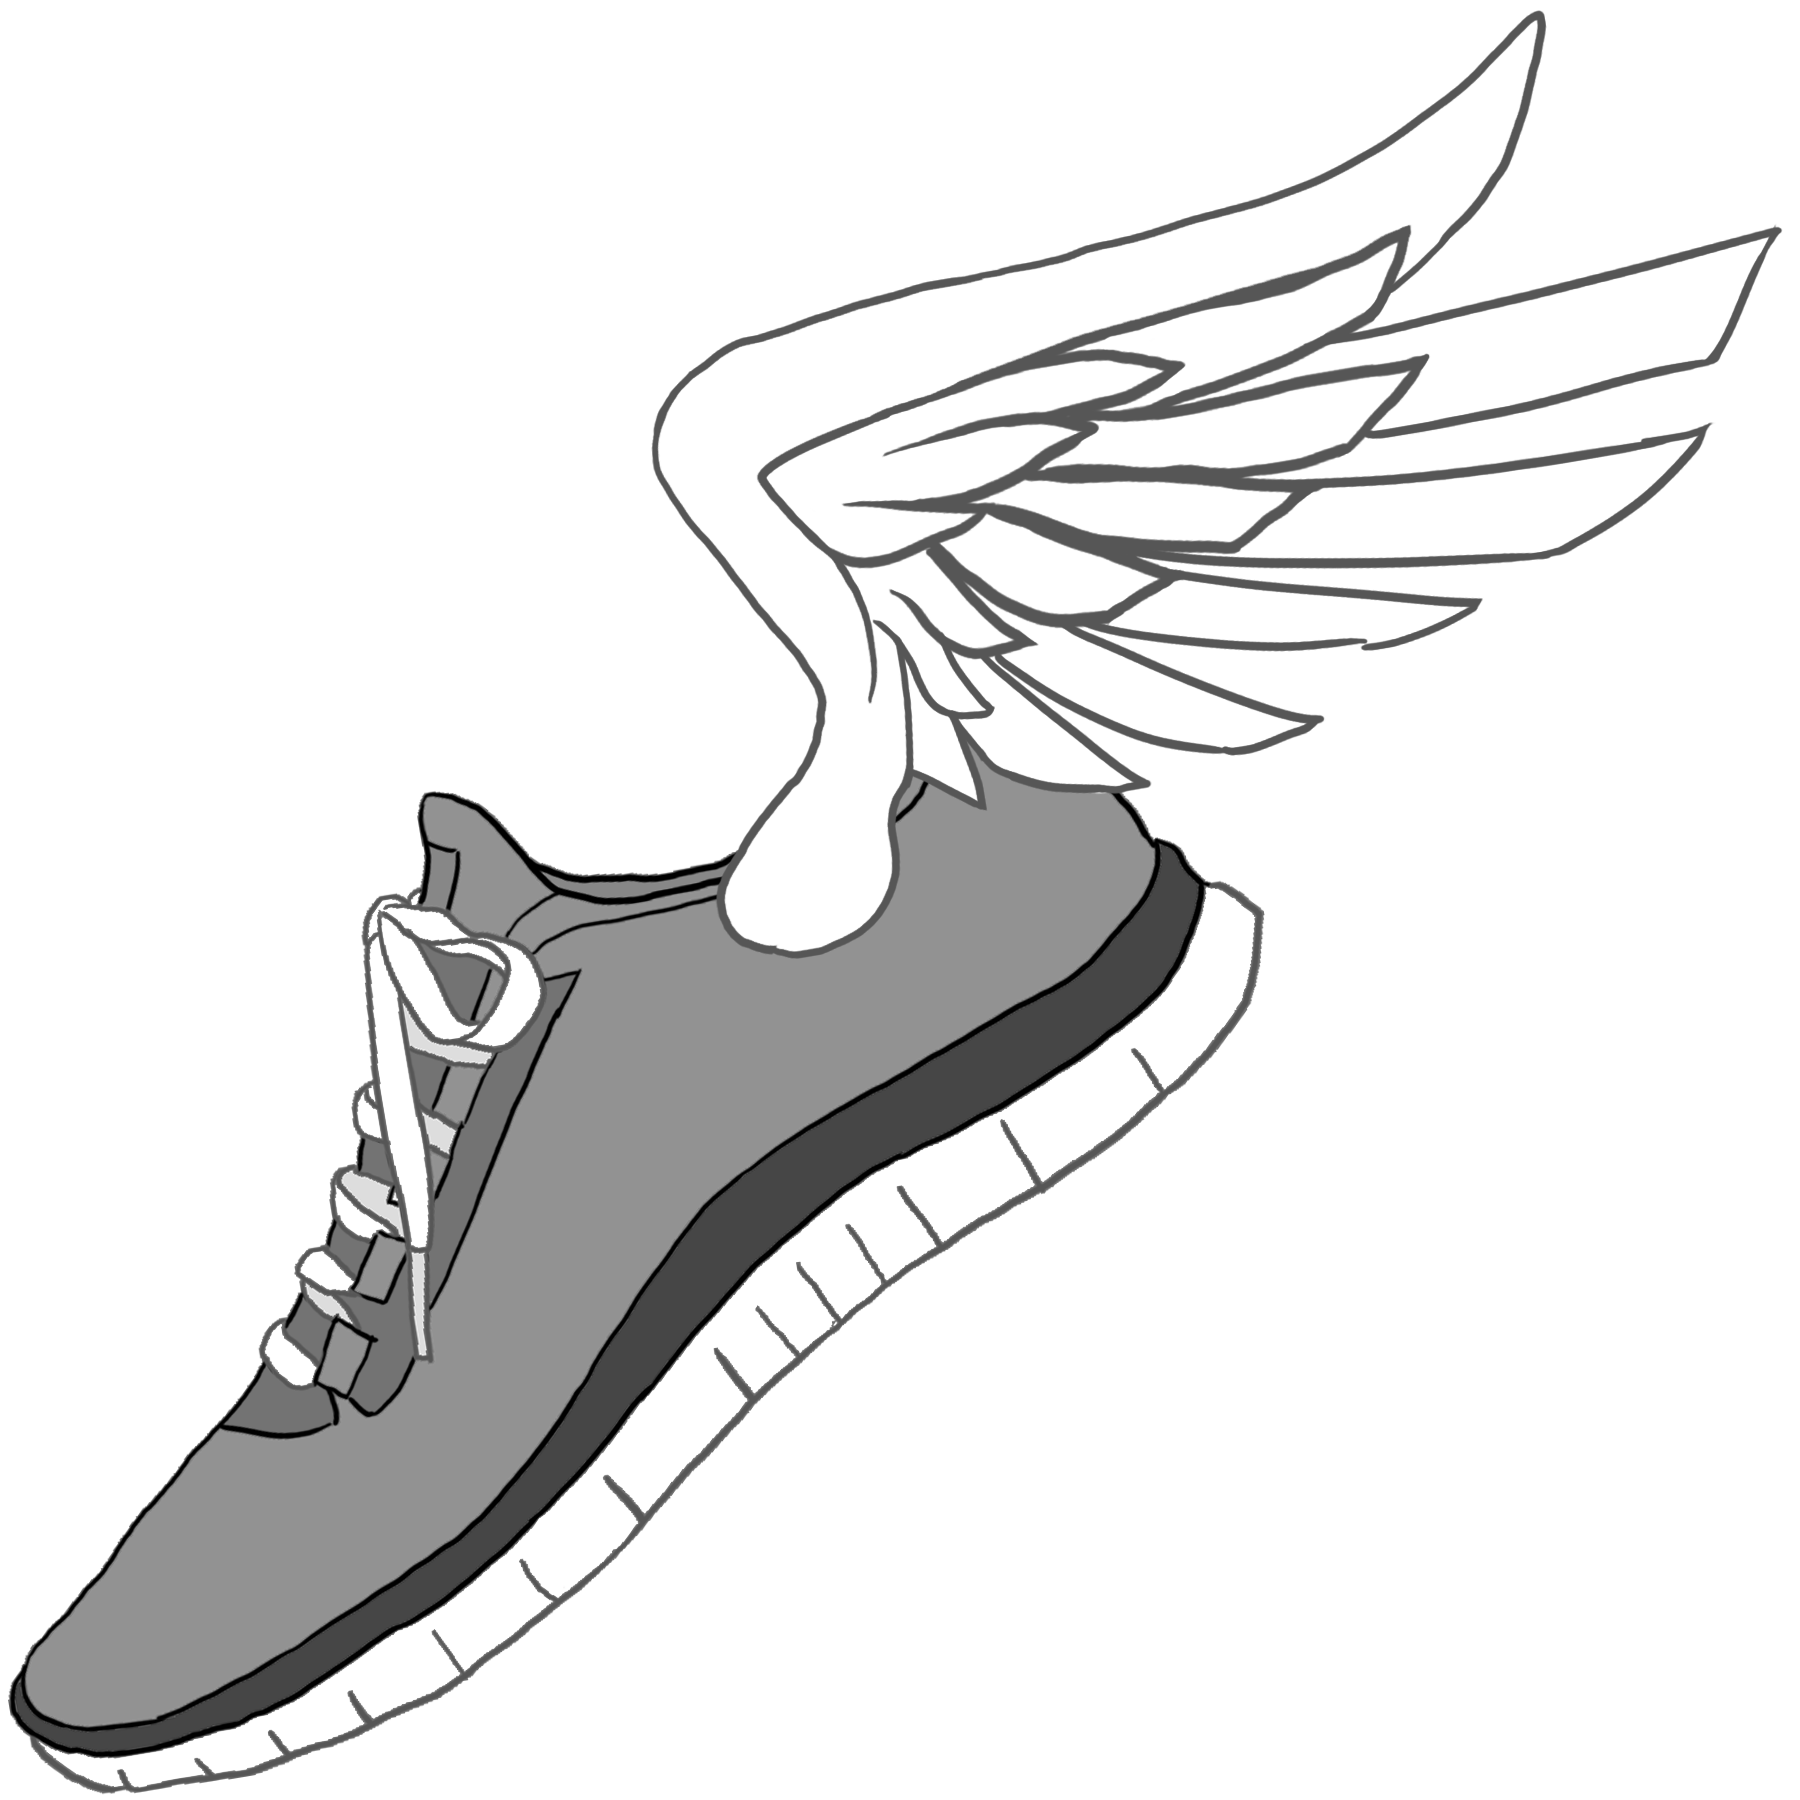 1800x1800 Vector And Jordan Tennis Shoe Clipart With Transparent Background